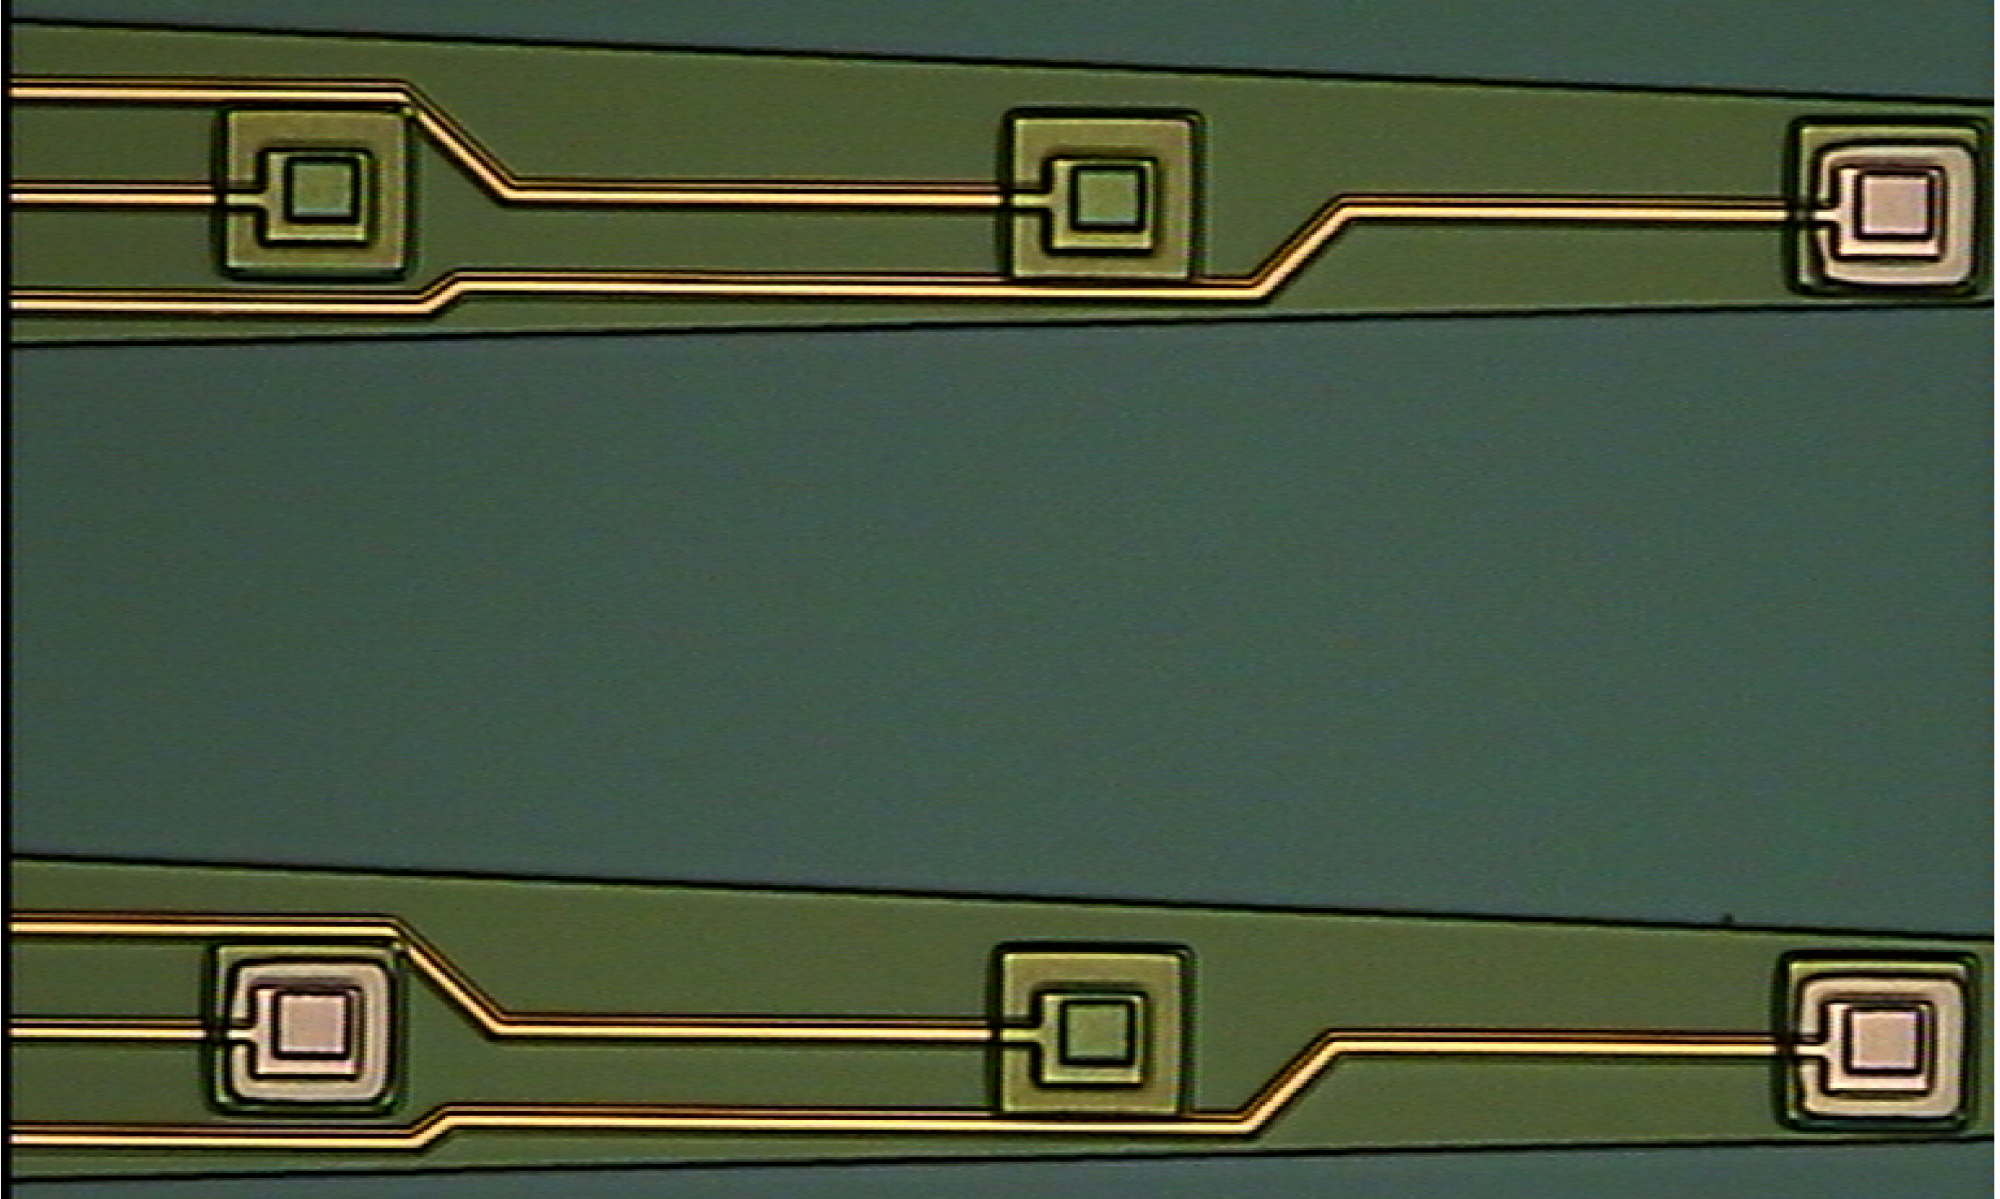 Neuroelectronic Systems